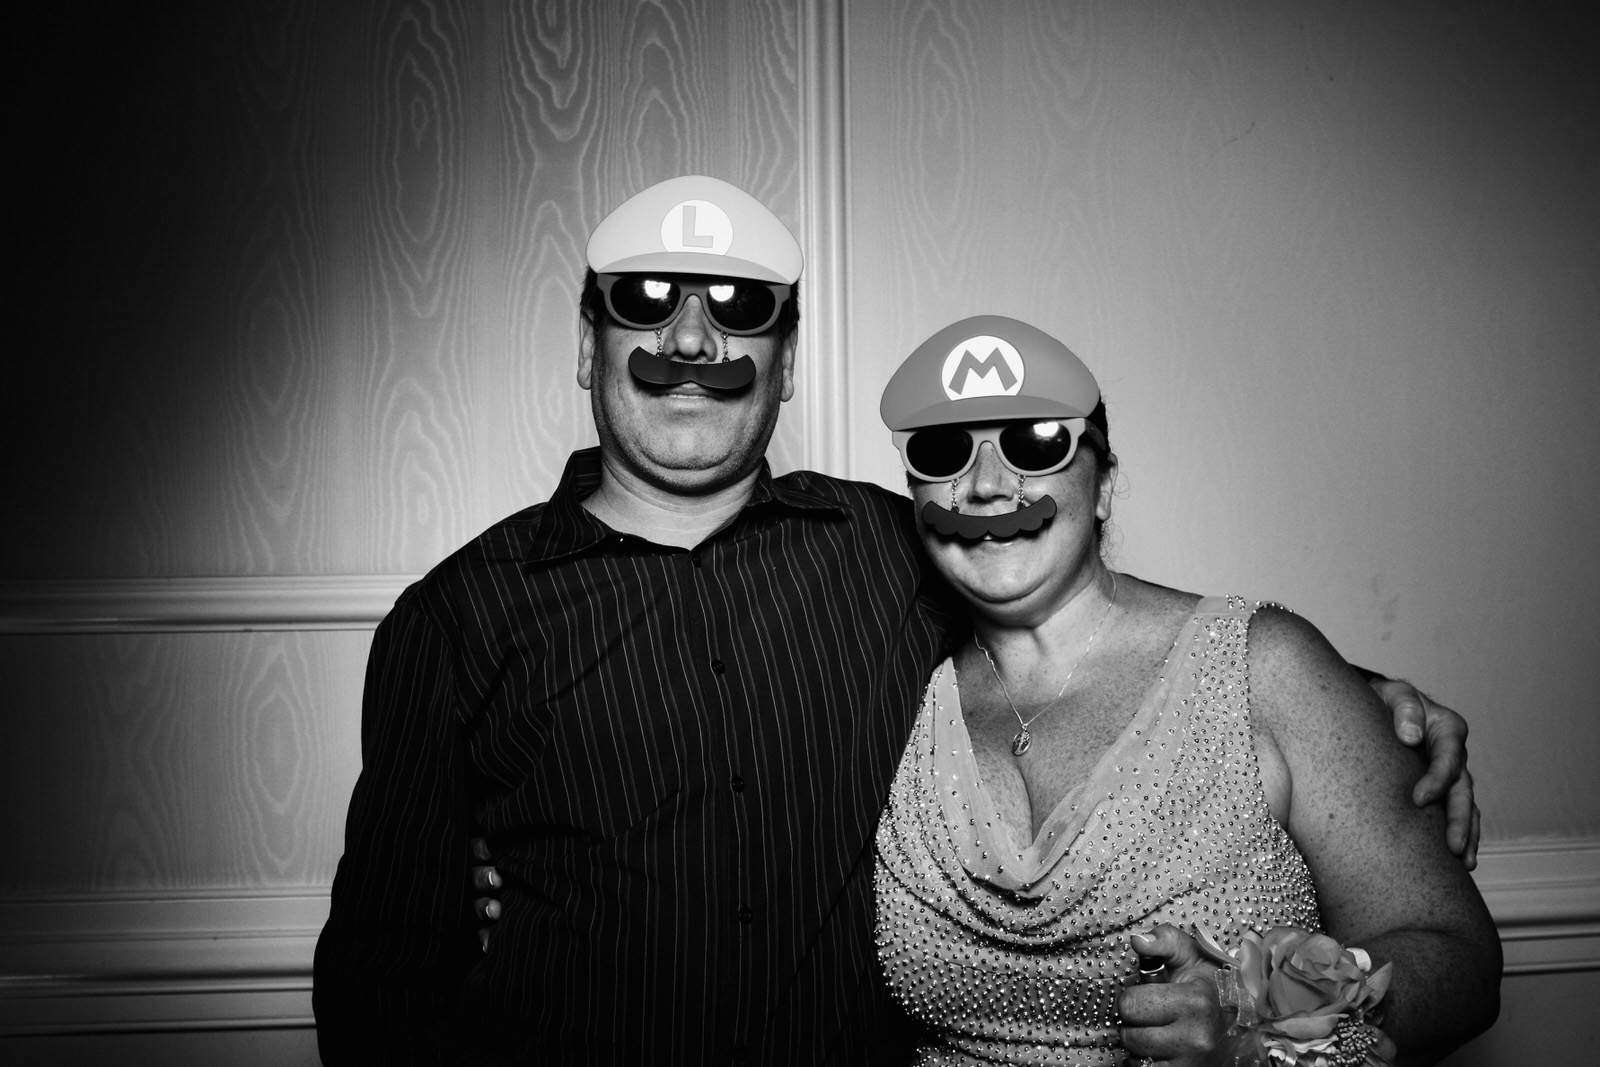 Ashley-Tyrone-Wedding-Photo-Booth-Presidential_Norristown-Wedding-1.jpg